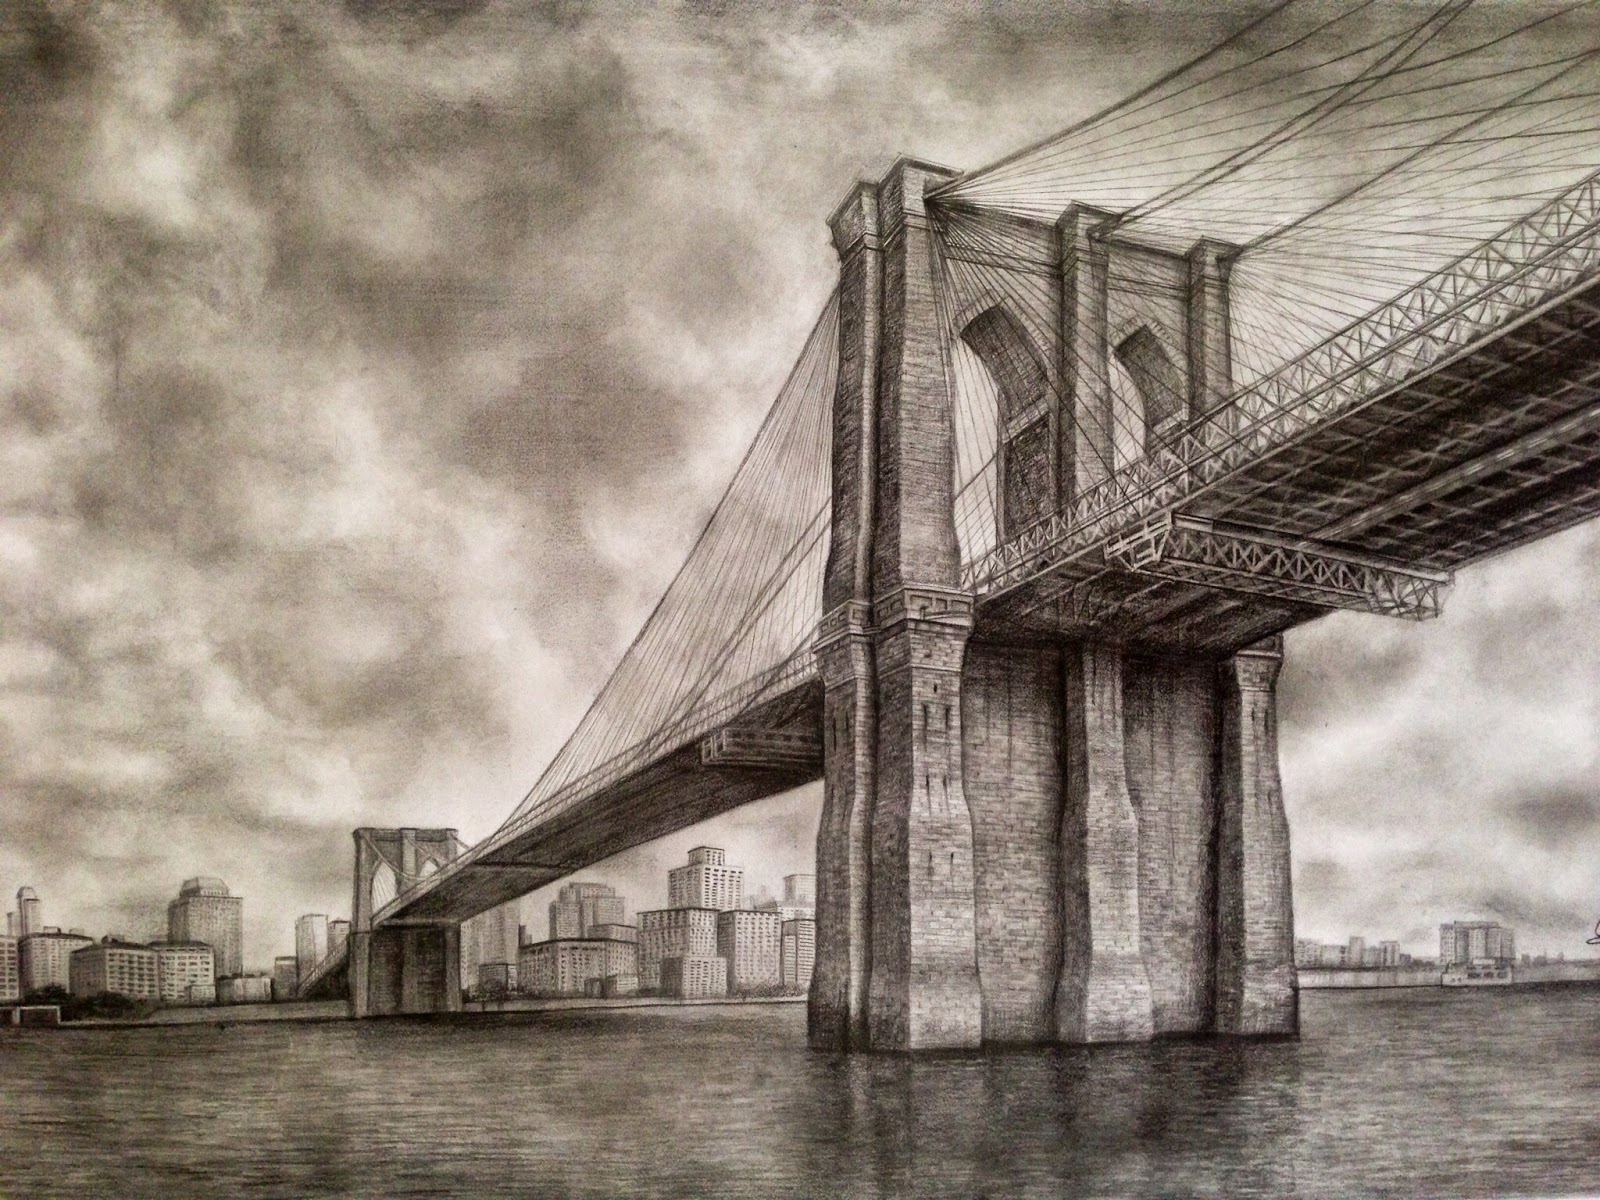 Drawn bridge Of Architect: an Brooklyn Bridge